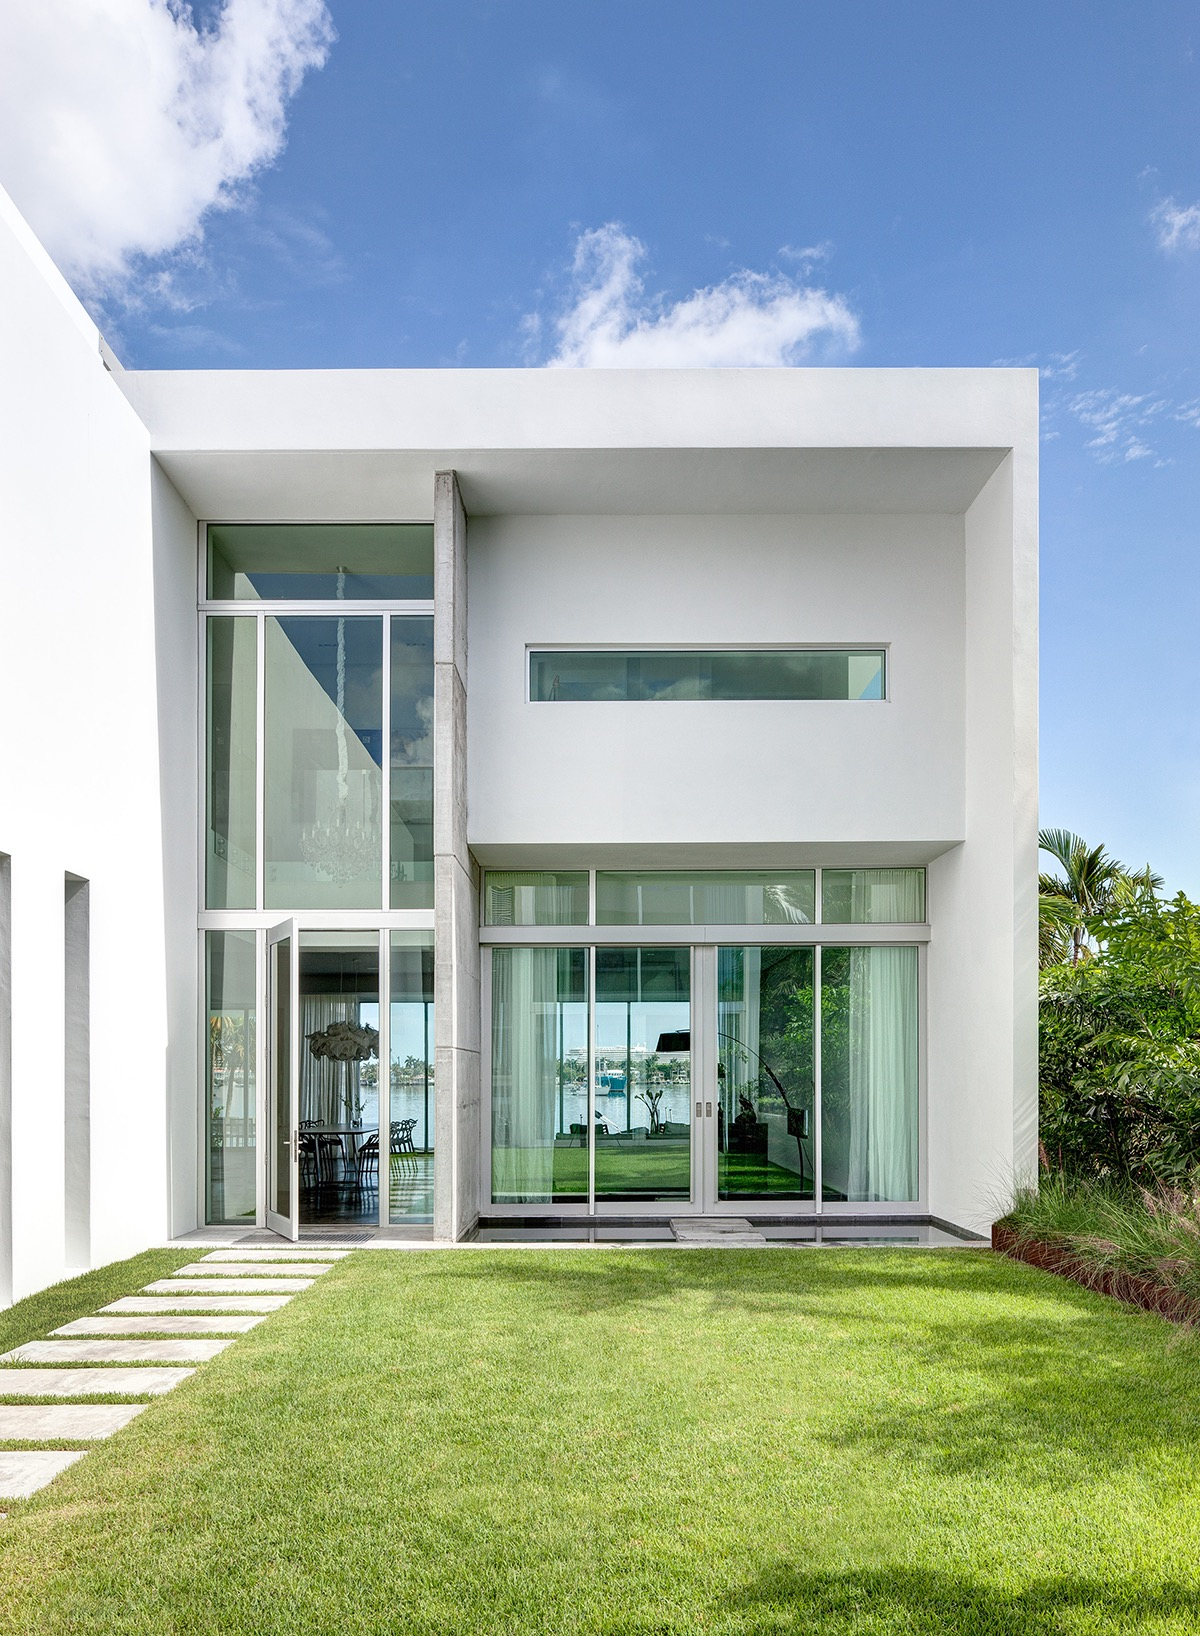 Lushly Landscaped Courtyard For Minimalist House Exterior (Image 13 of 30)